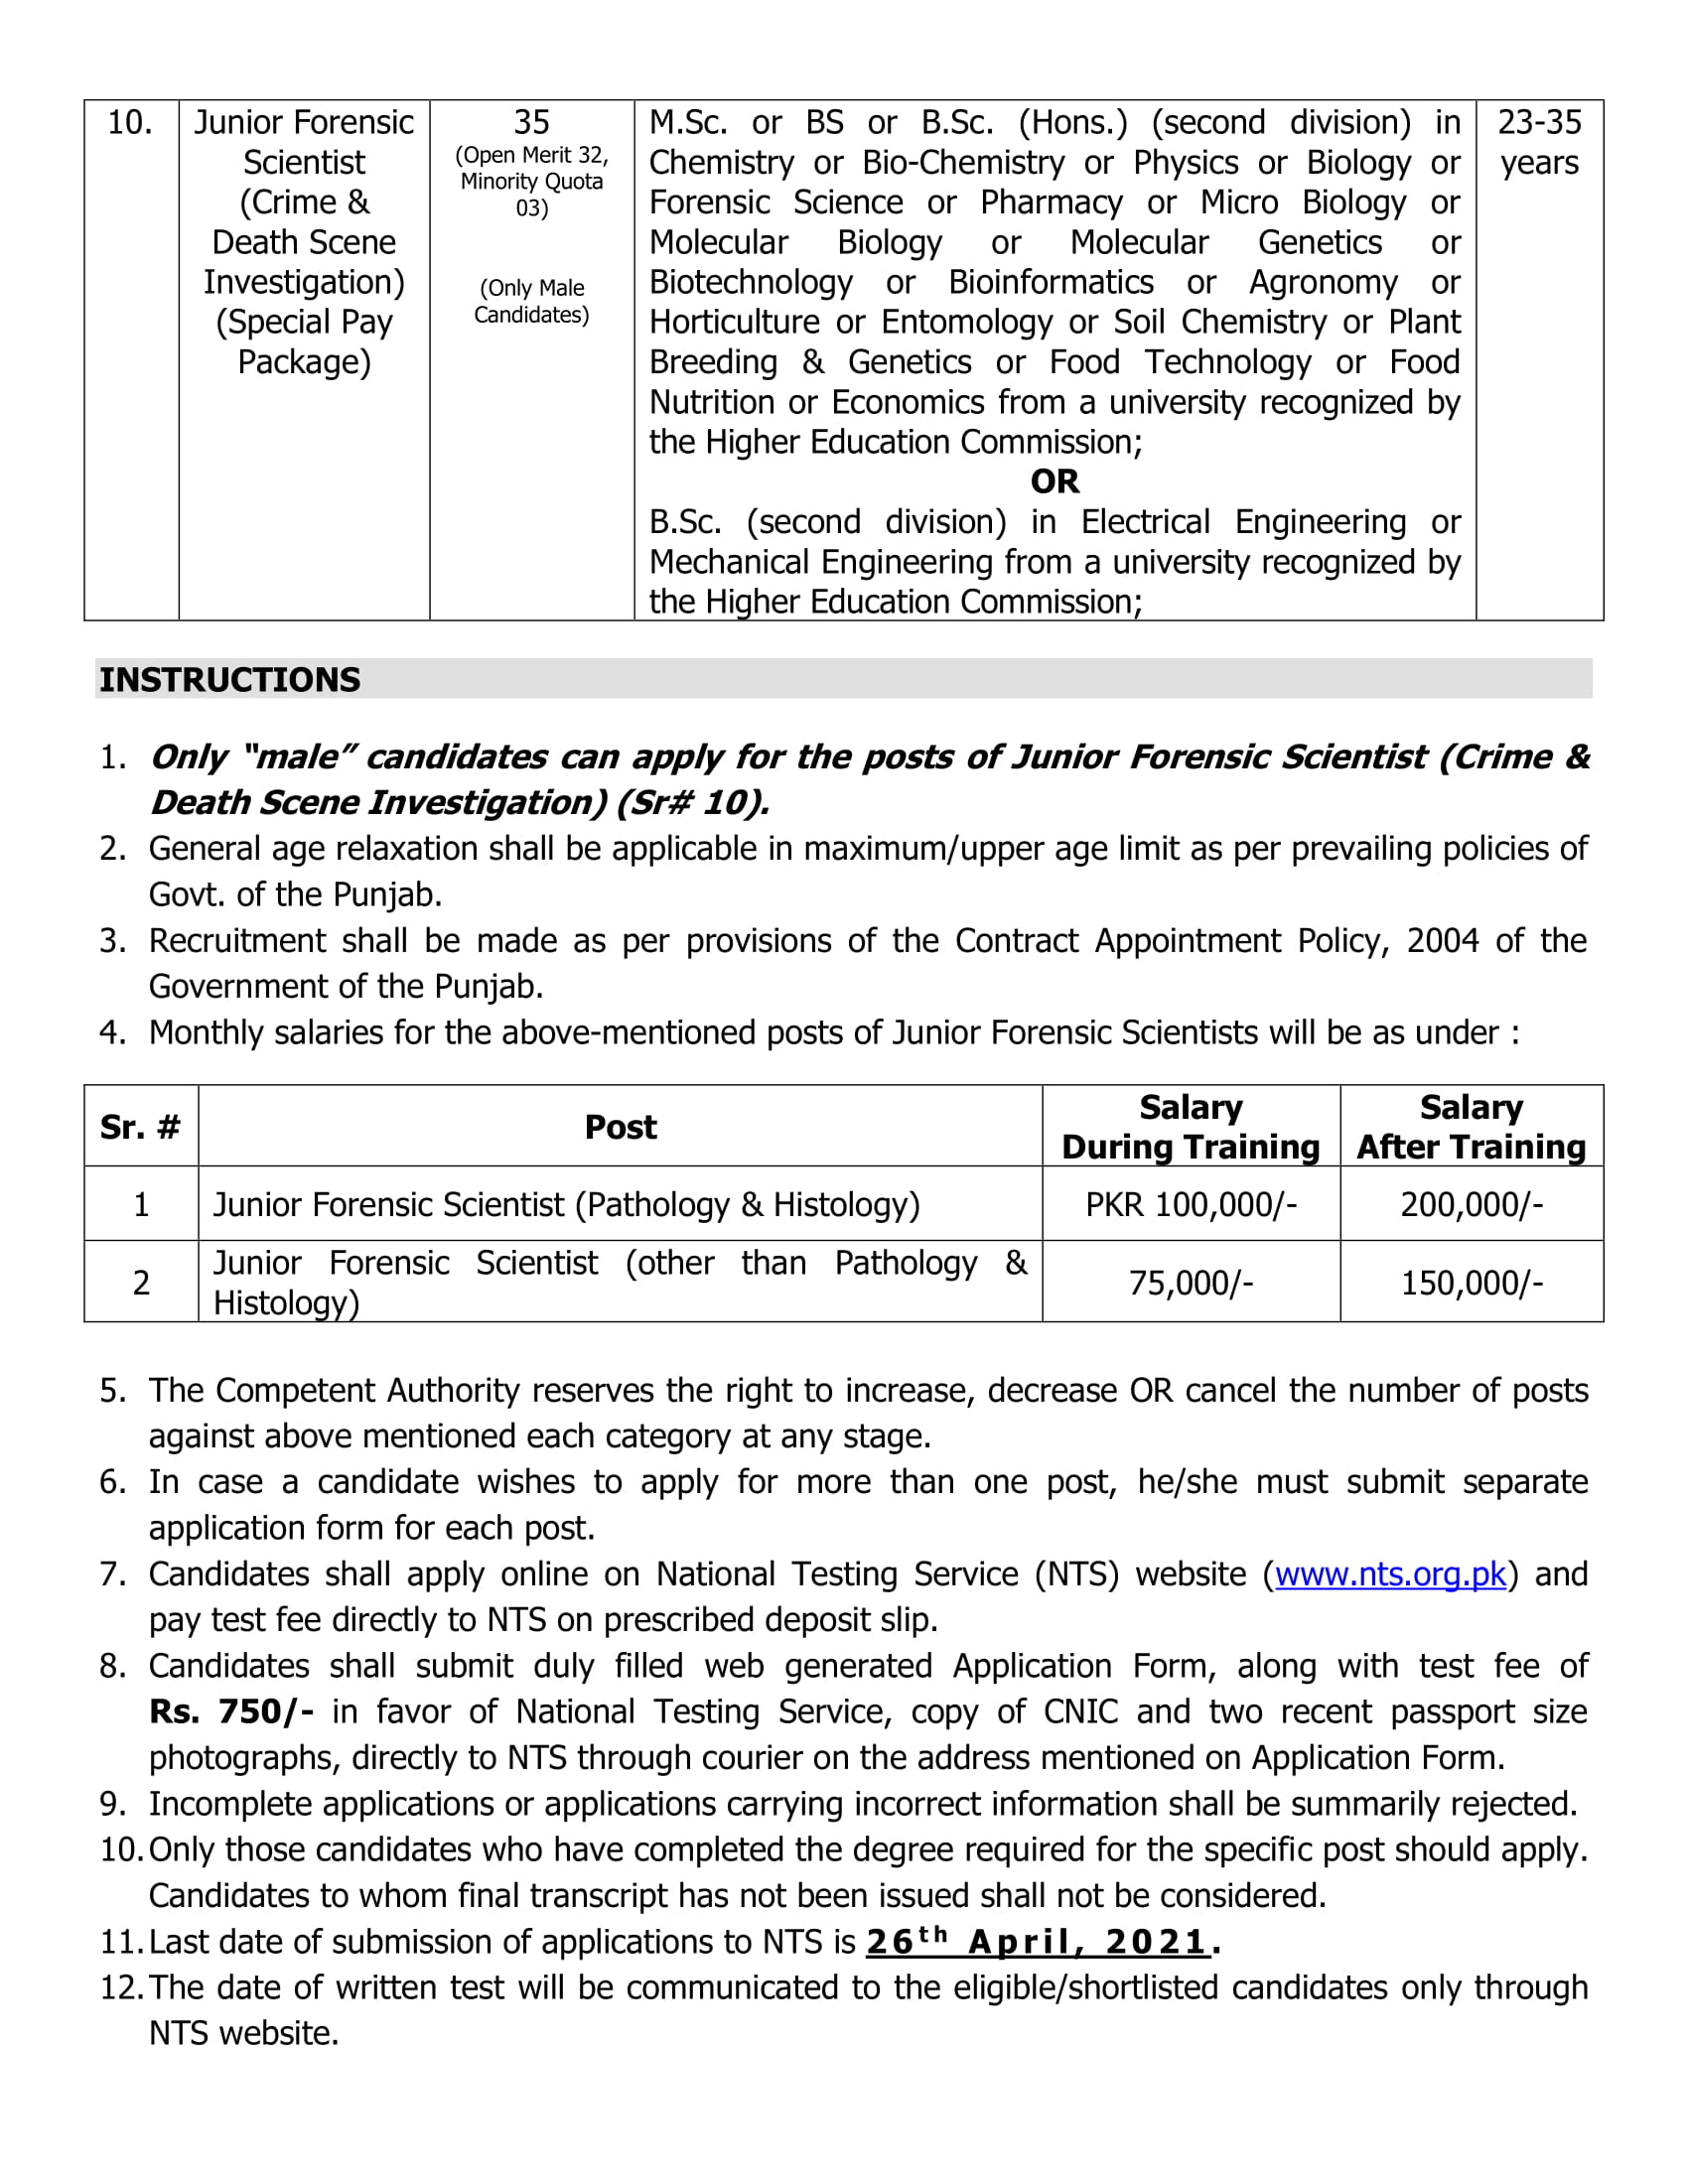 How To Apply For Punjab Forensic Science Agency (PFSA) Jobs 2021